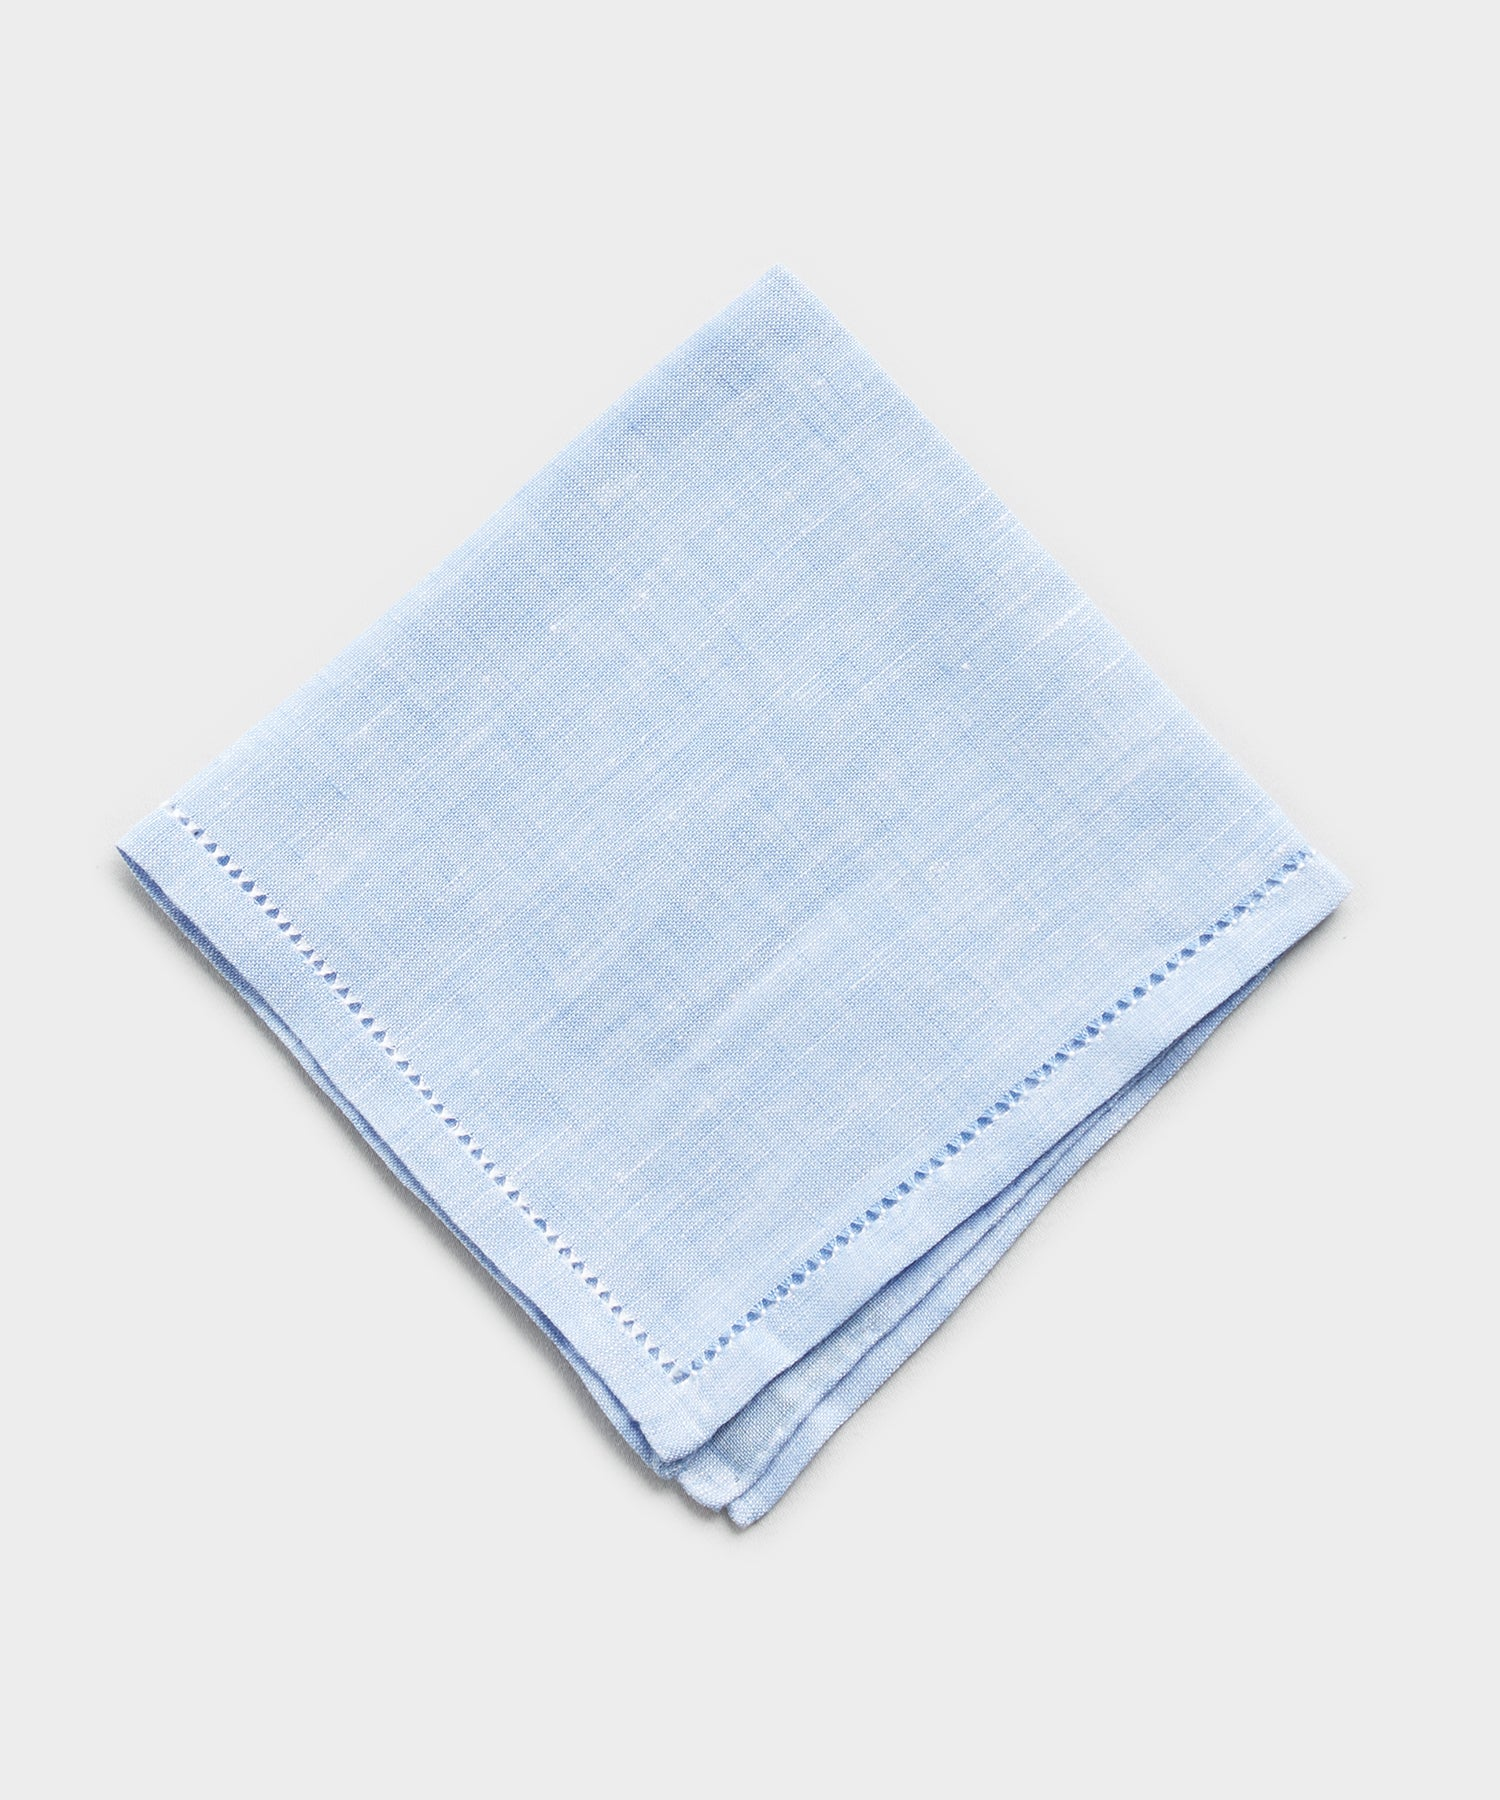 Mungai Orlo A Giorno Linen Pocket Square in Blue